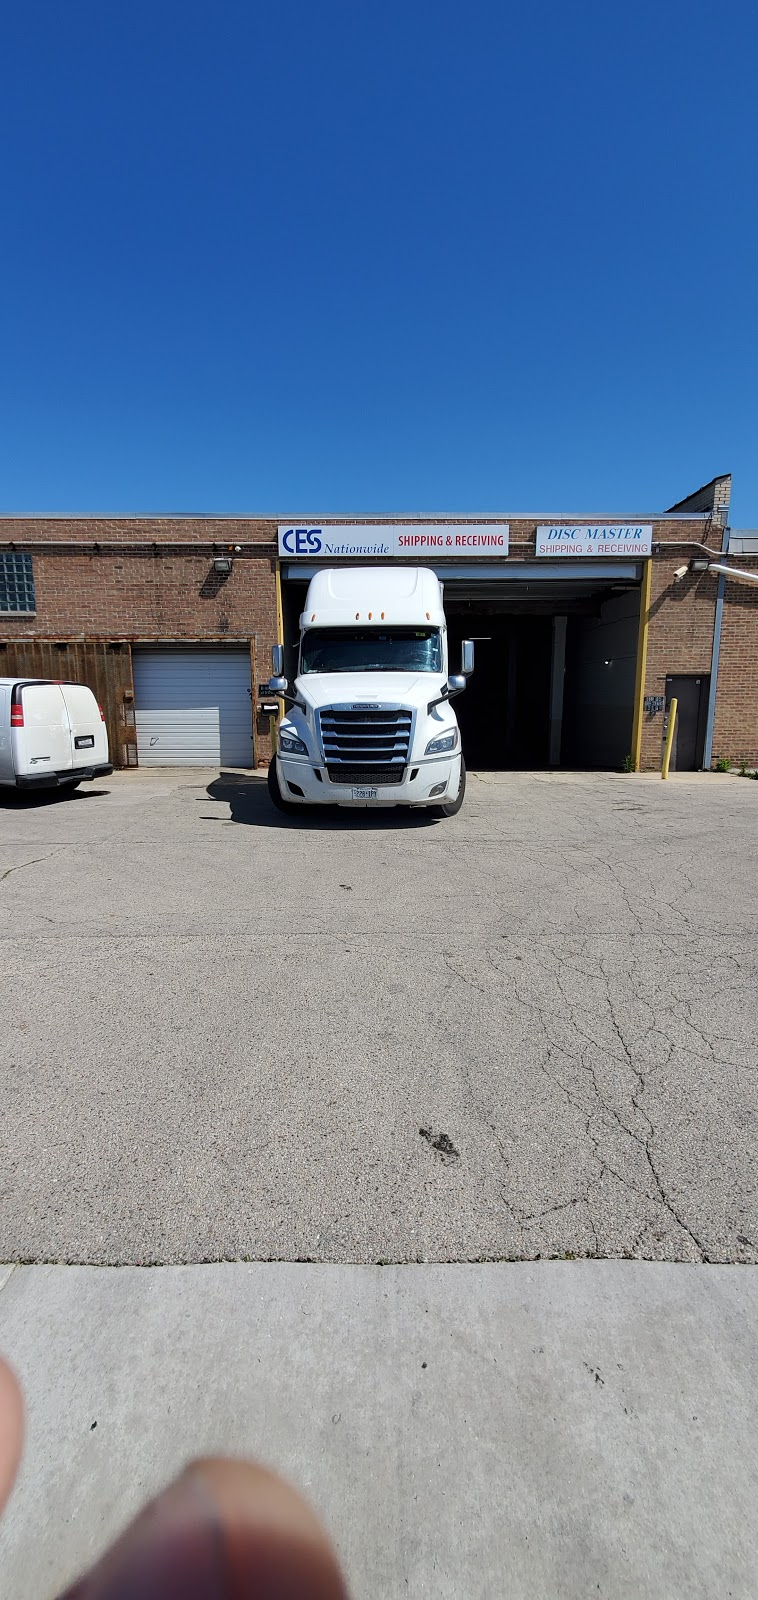 Chicagoland Equipment & Supply - point of interest    Photo 1 of 2   Address: 5075 W Lexington St, Chicago, IL 60644, USA   Phone: (773) 533-3333